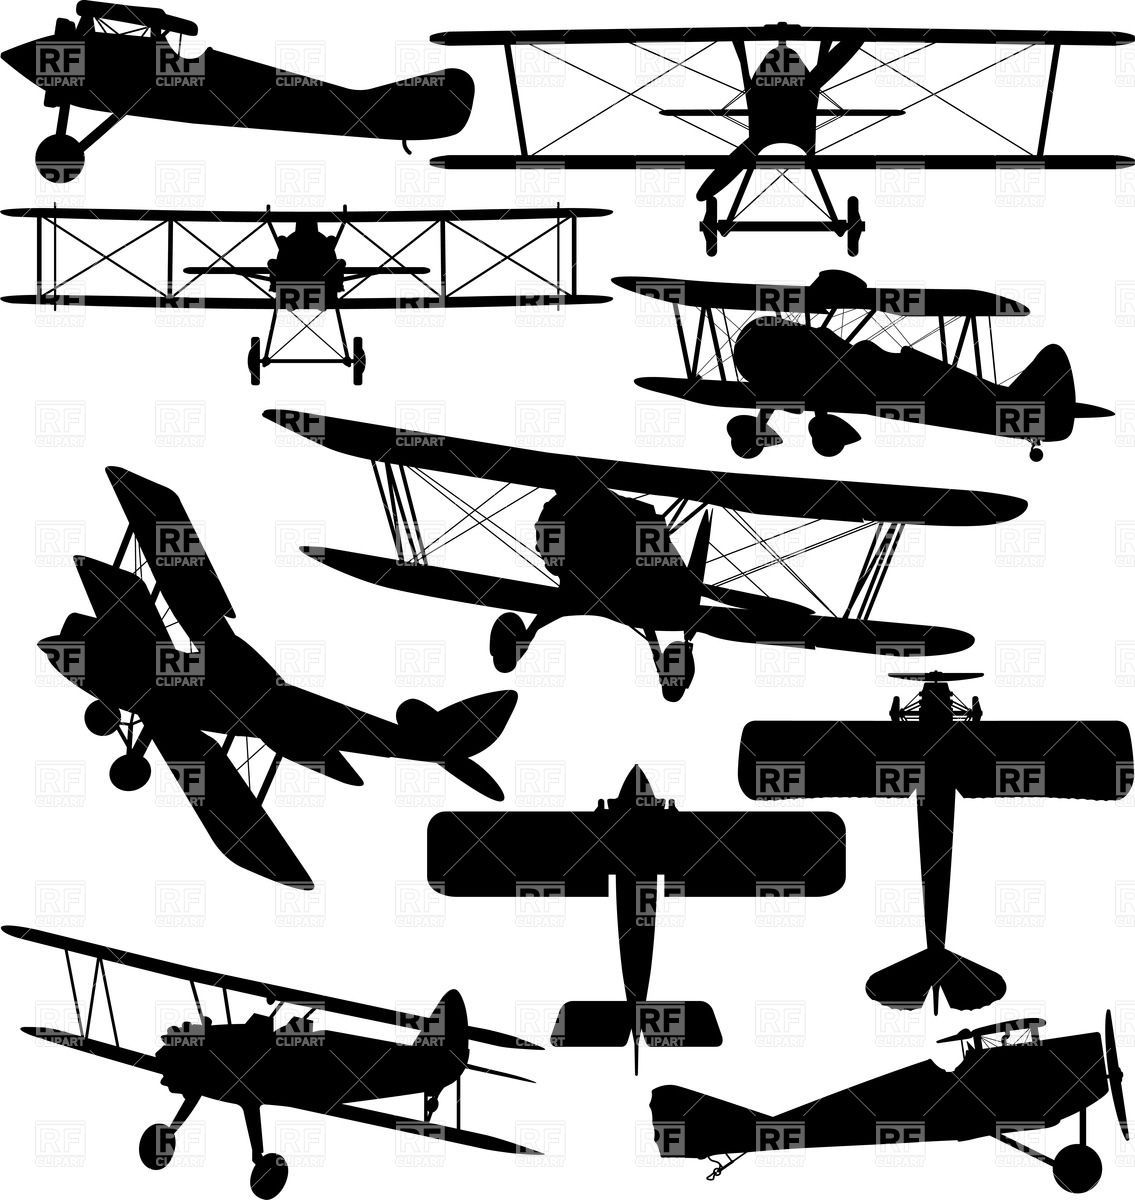 Biplane clipart sketch. Silhouettes of old aeroplane